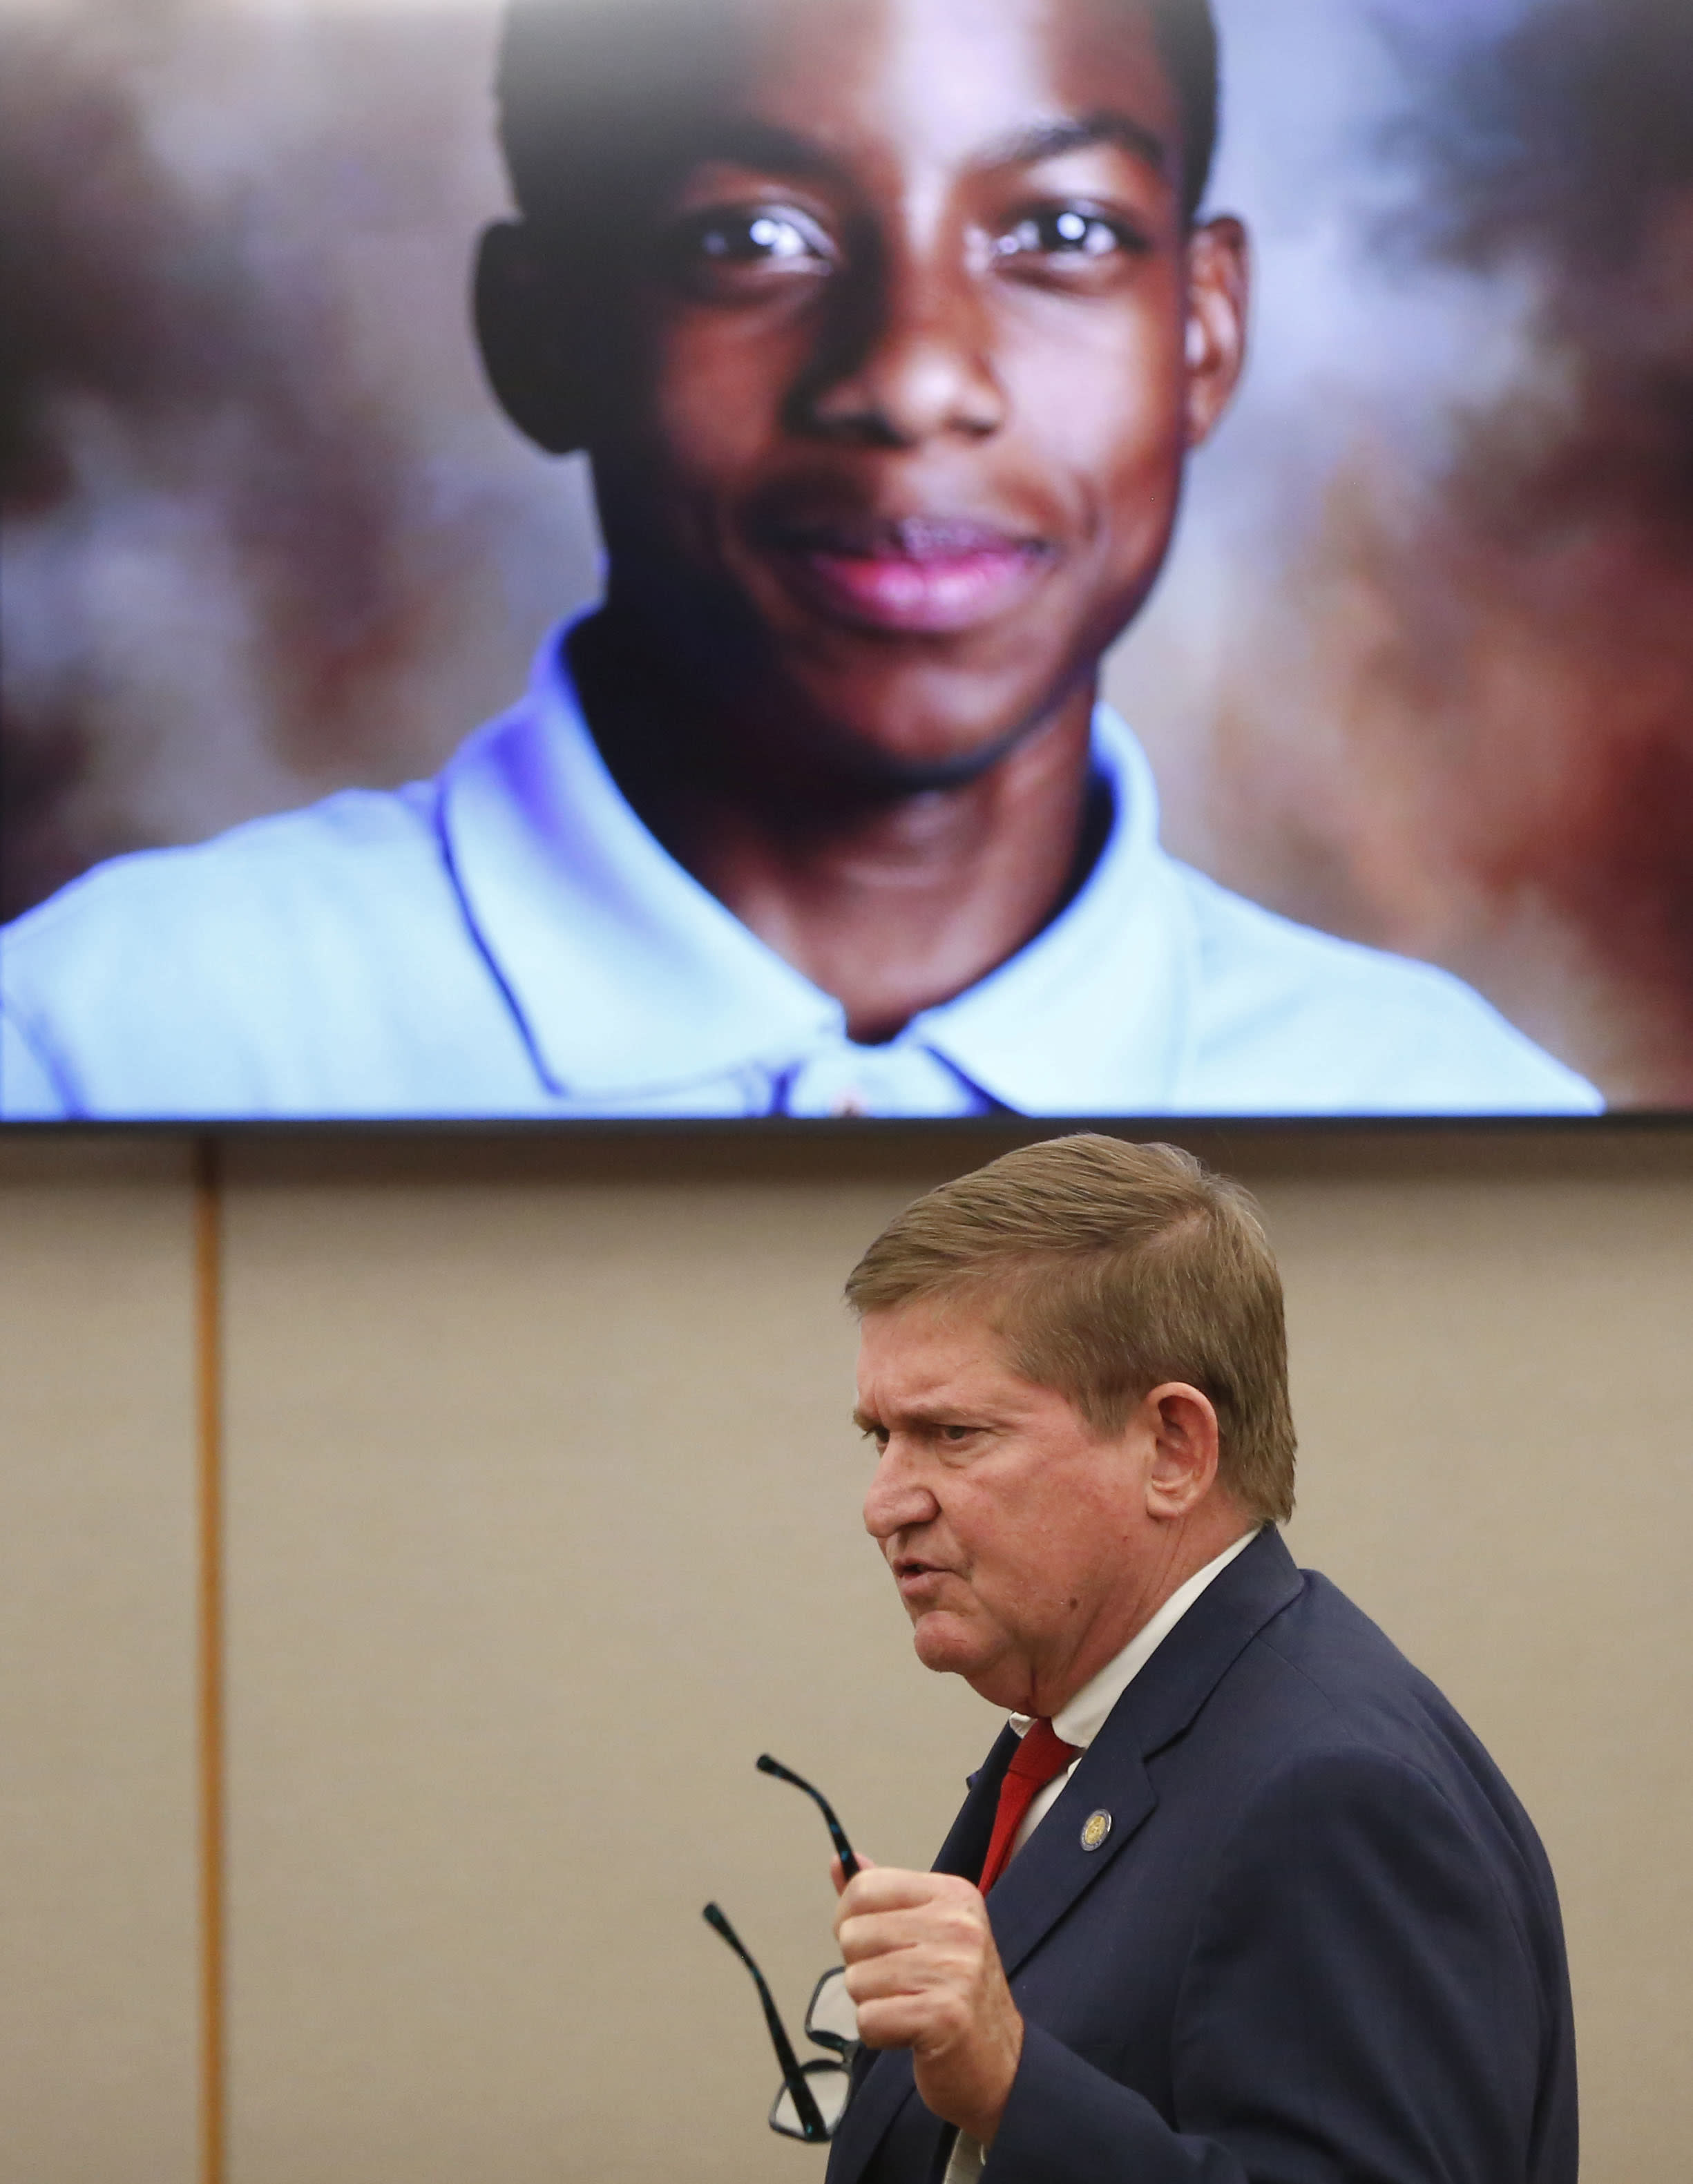 Lead prosecutor Michael Snipes gives a closing argument in the trial of former Balch Springs police officer Roy Oliver, who is charged with the murder of 15-year-old Jordan Edwards, at the Frank Crowley Courts Building in Dallas on Monday, Aug. 27, 2018. (Rose Baca/The Dallas Morning News via AP, Pool)